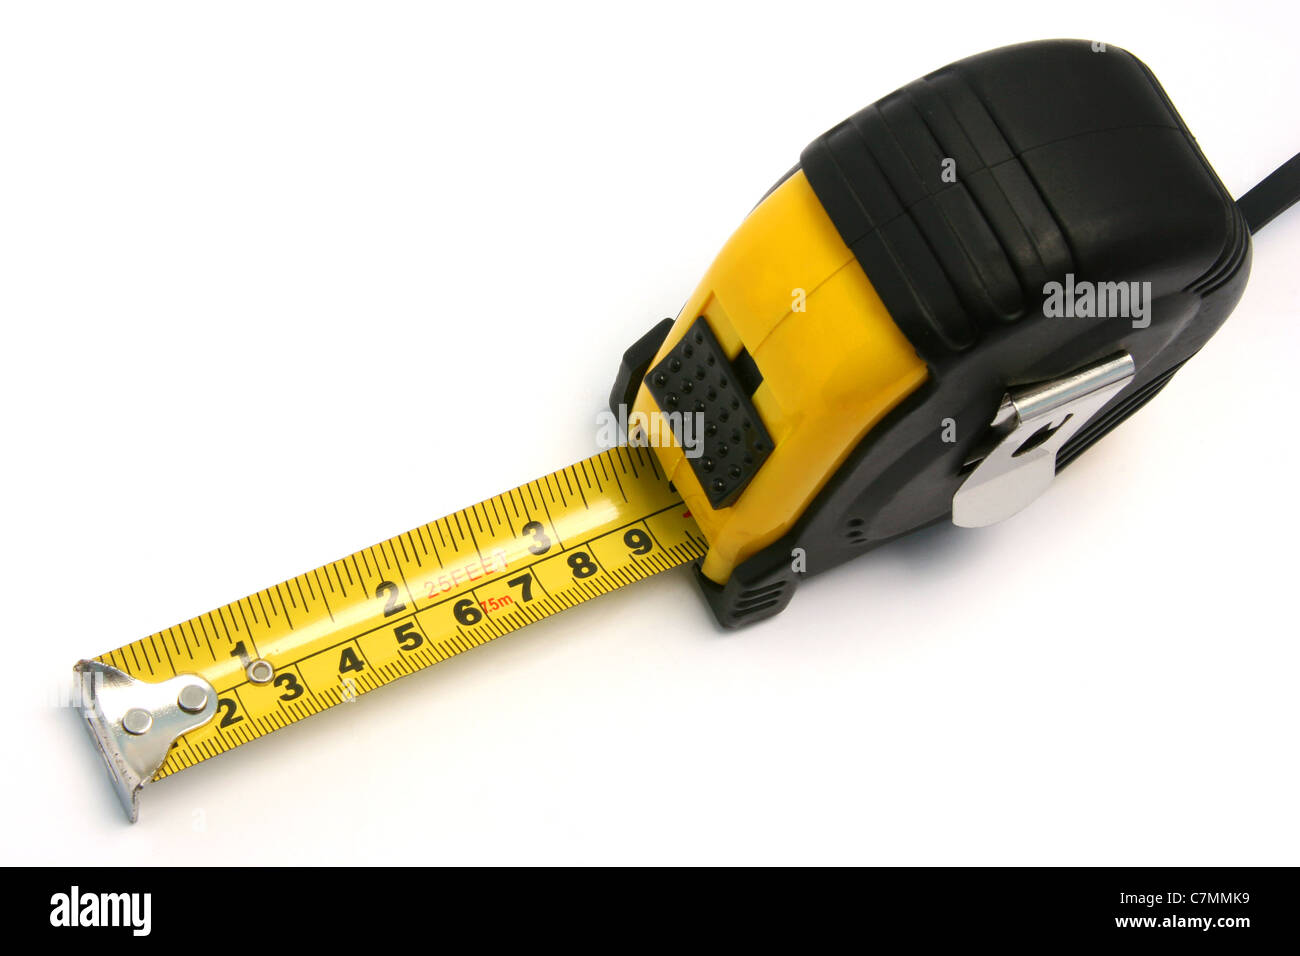 A measuring tape on white background. - Stock Image